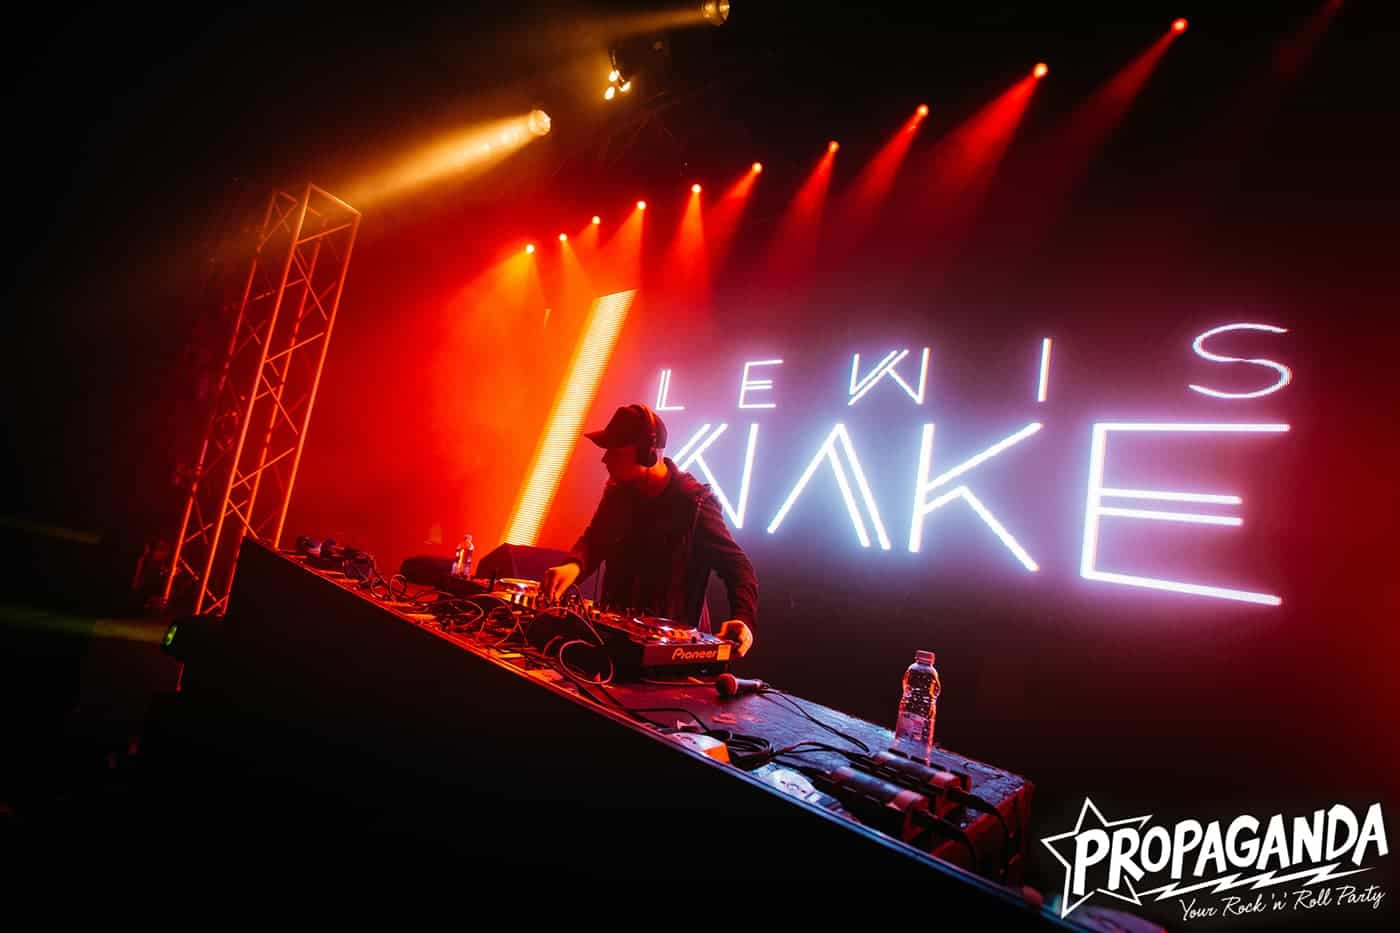 Image of Lewis Wake DJing with his name in lights behind him